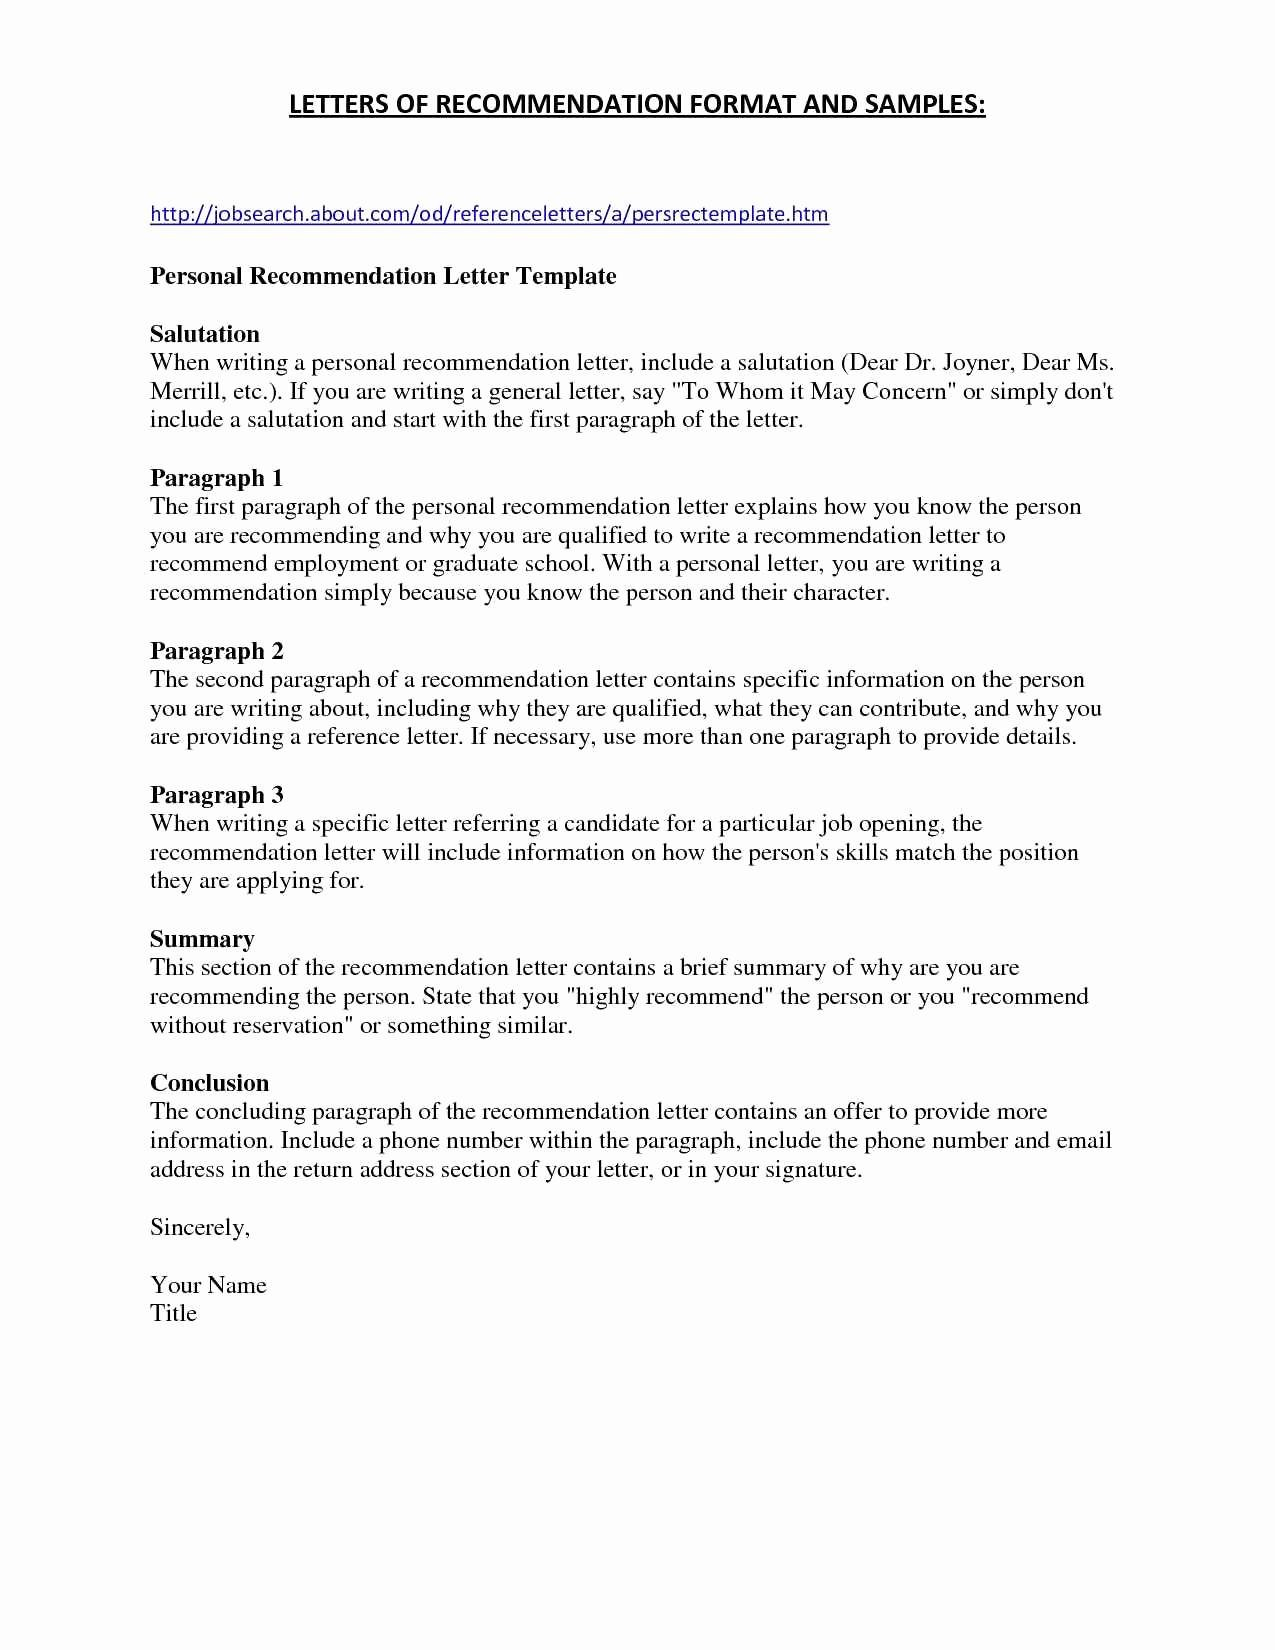 Self Employment Letter Template - Job Letter for Self Employed Person Valid Cover Letter Self Employed